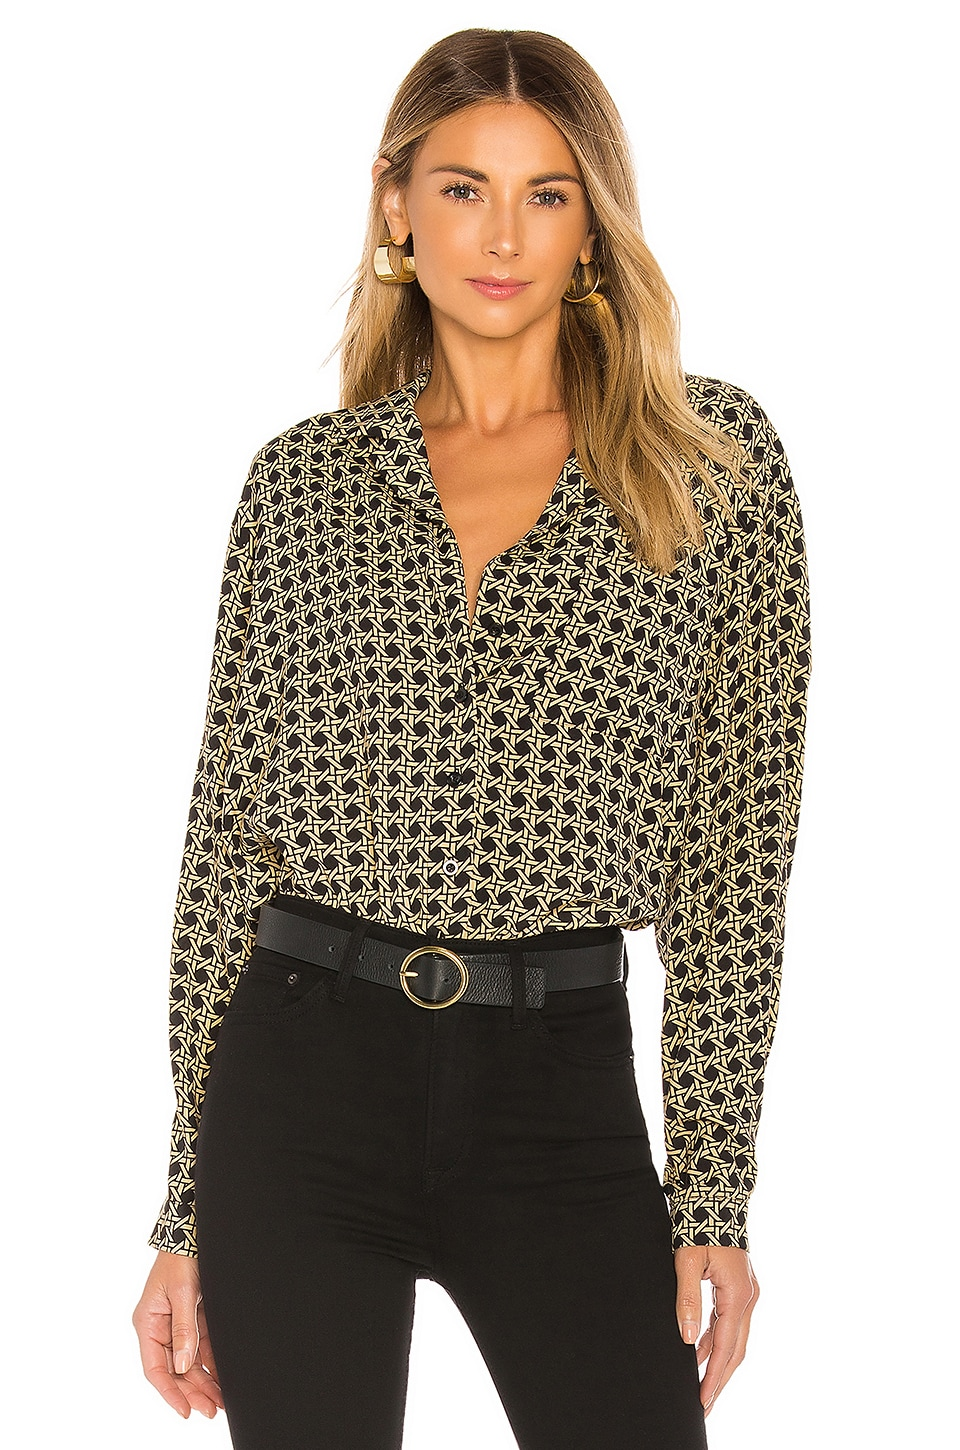 L'Academie The Lilou Top in Black Basket Weave